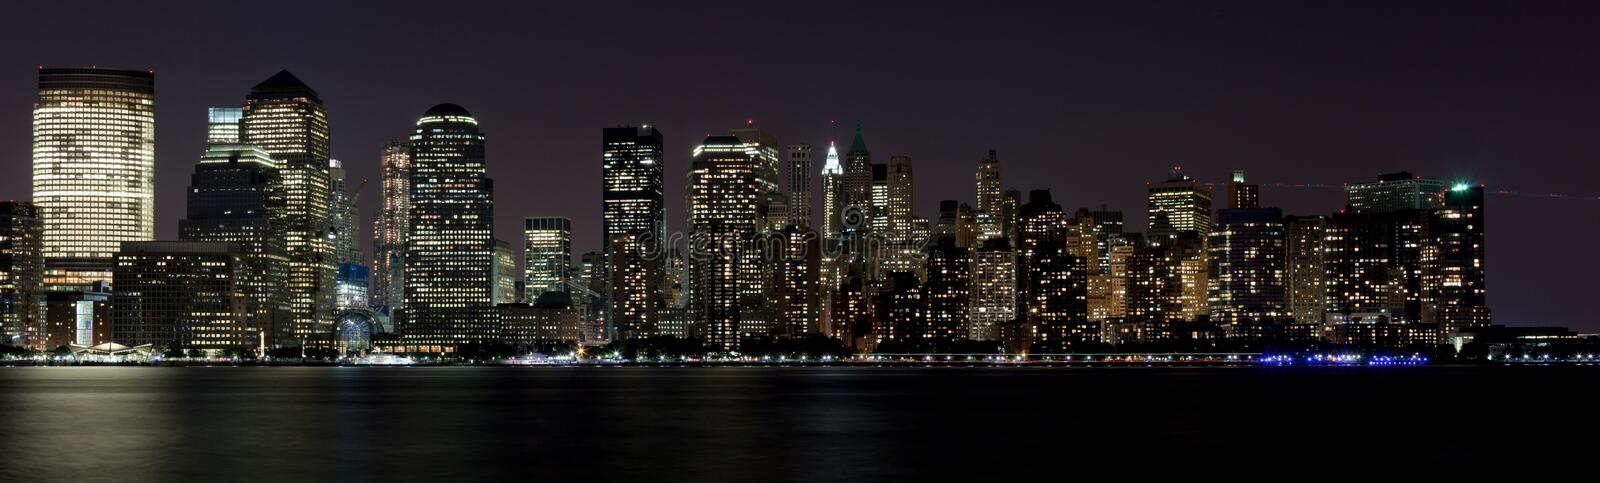 Download Skyscrapers Of Downtown NY City Night Stock Photo - Image: 15980600